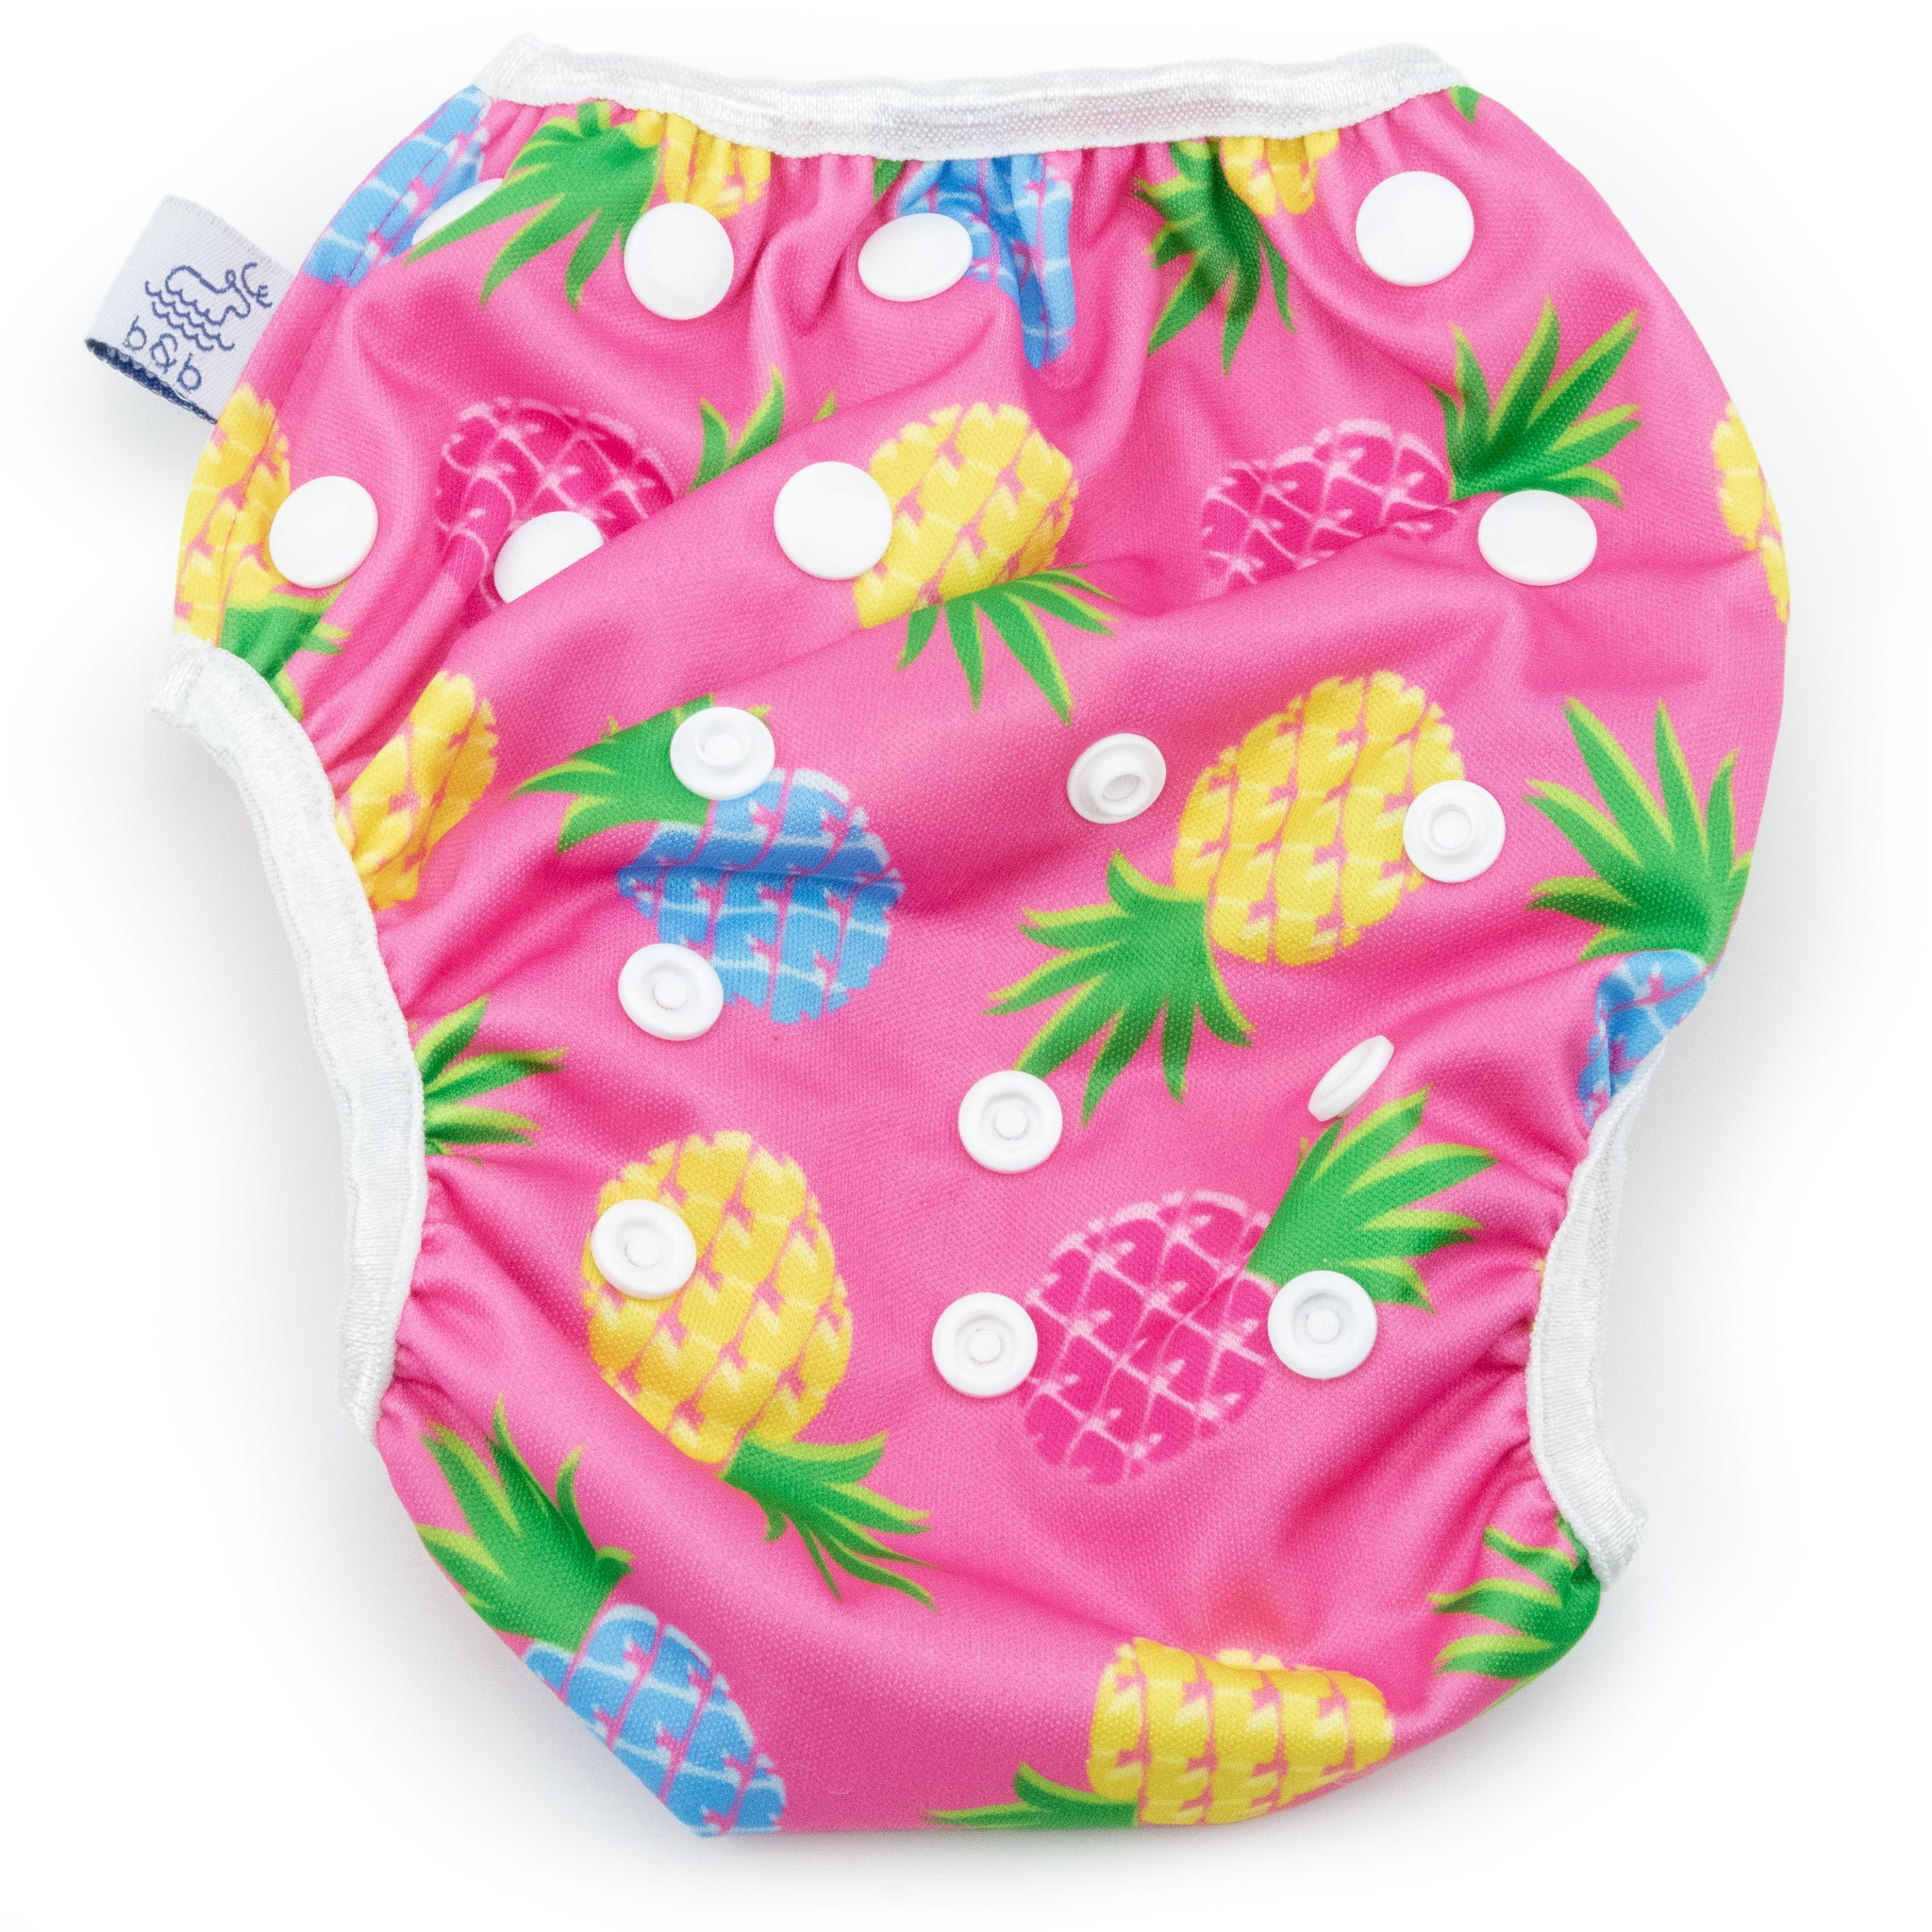 Beau and Belle Littles Swim Diaper, Large Size, light pink background with yellow, dark pink, and blue pineapples, flat lay, front view